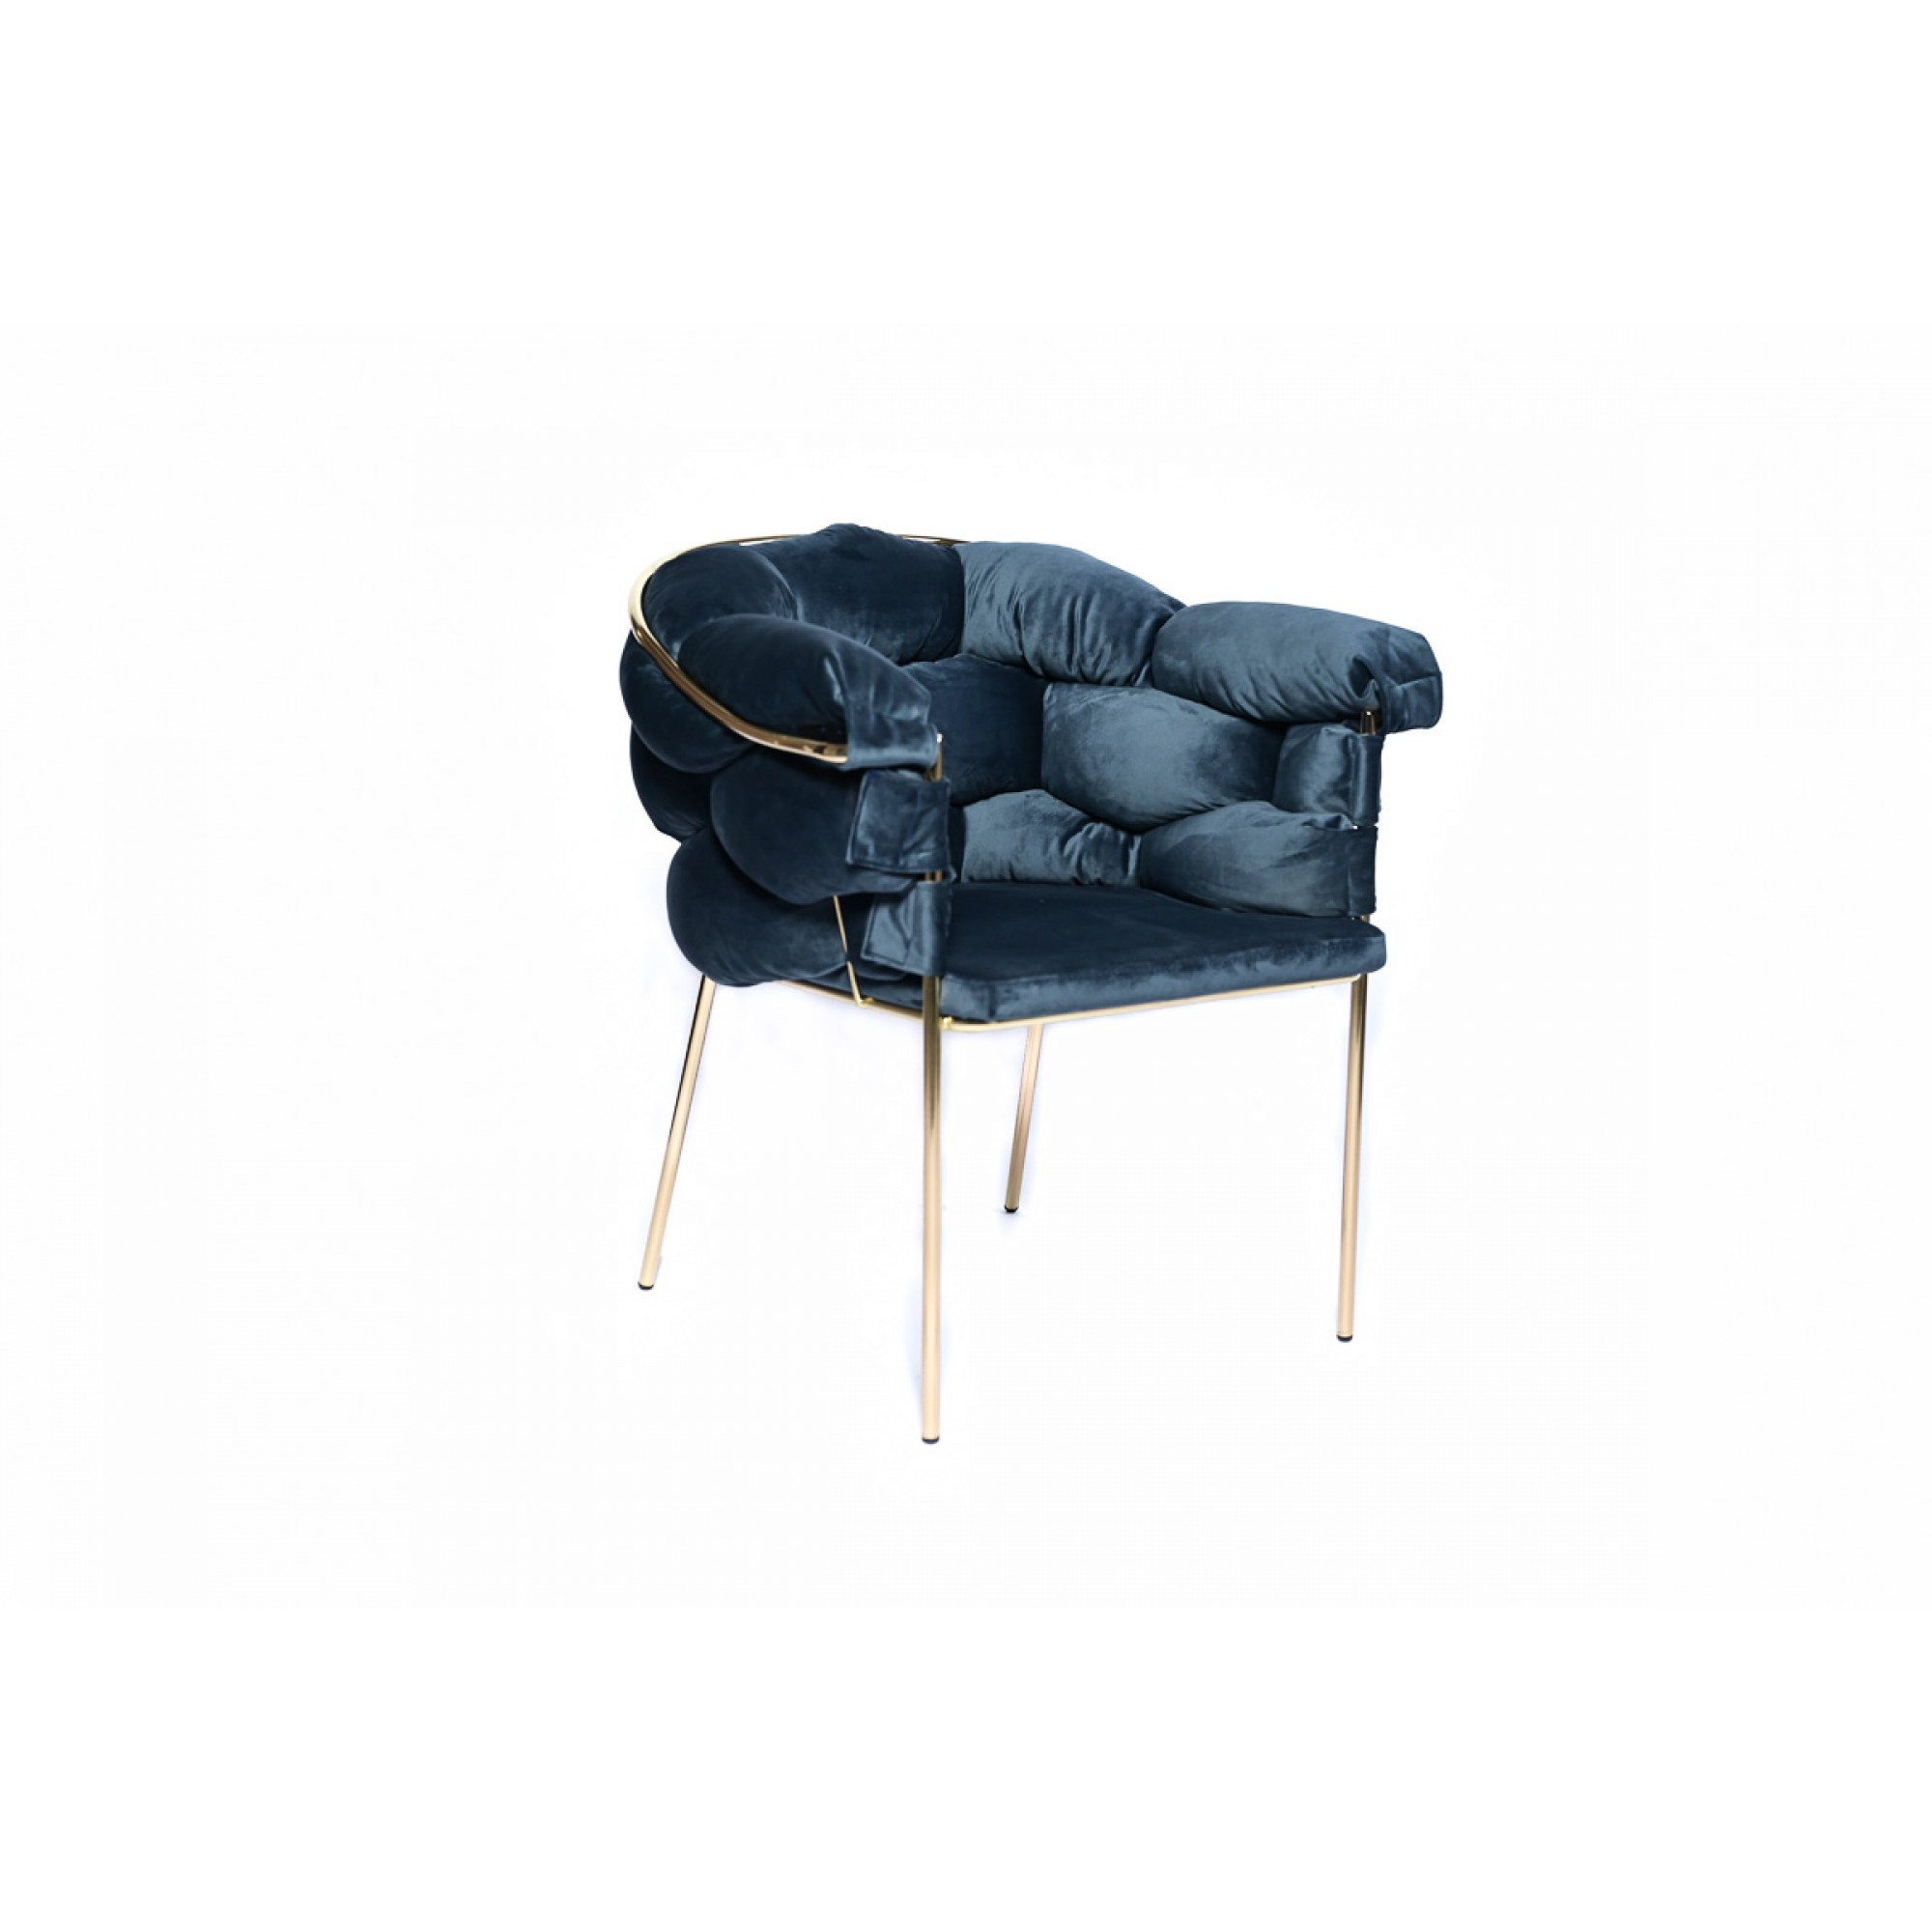 Chair with golden metal structure, fully upholstered with blue velvet - BALONLU